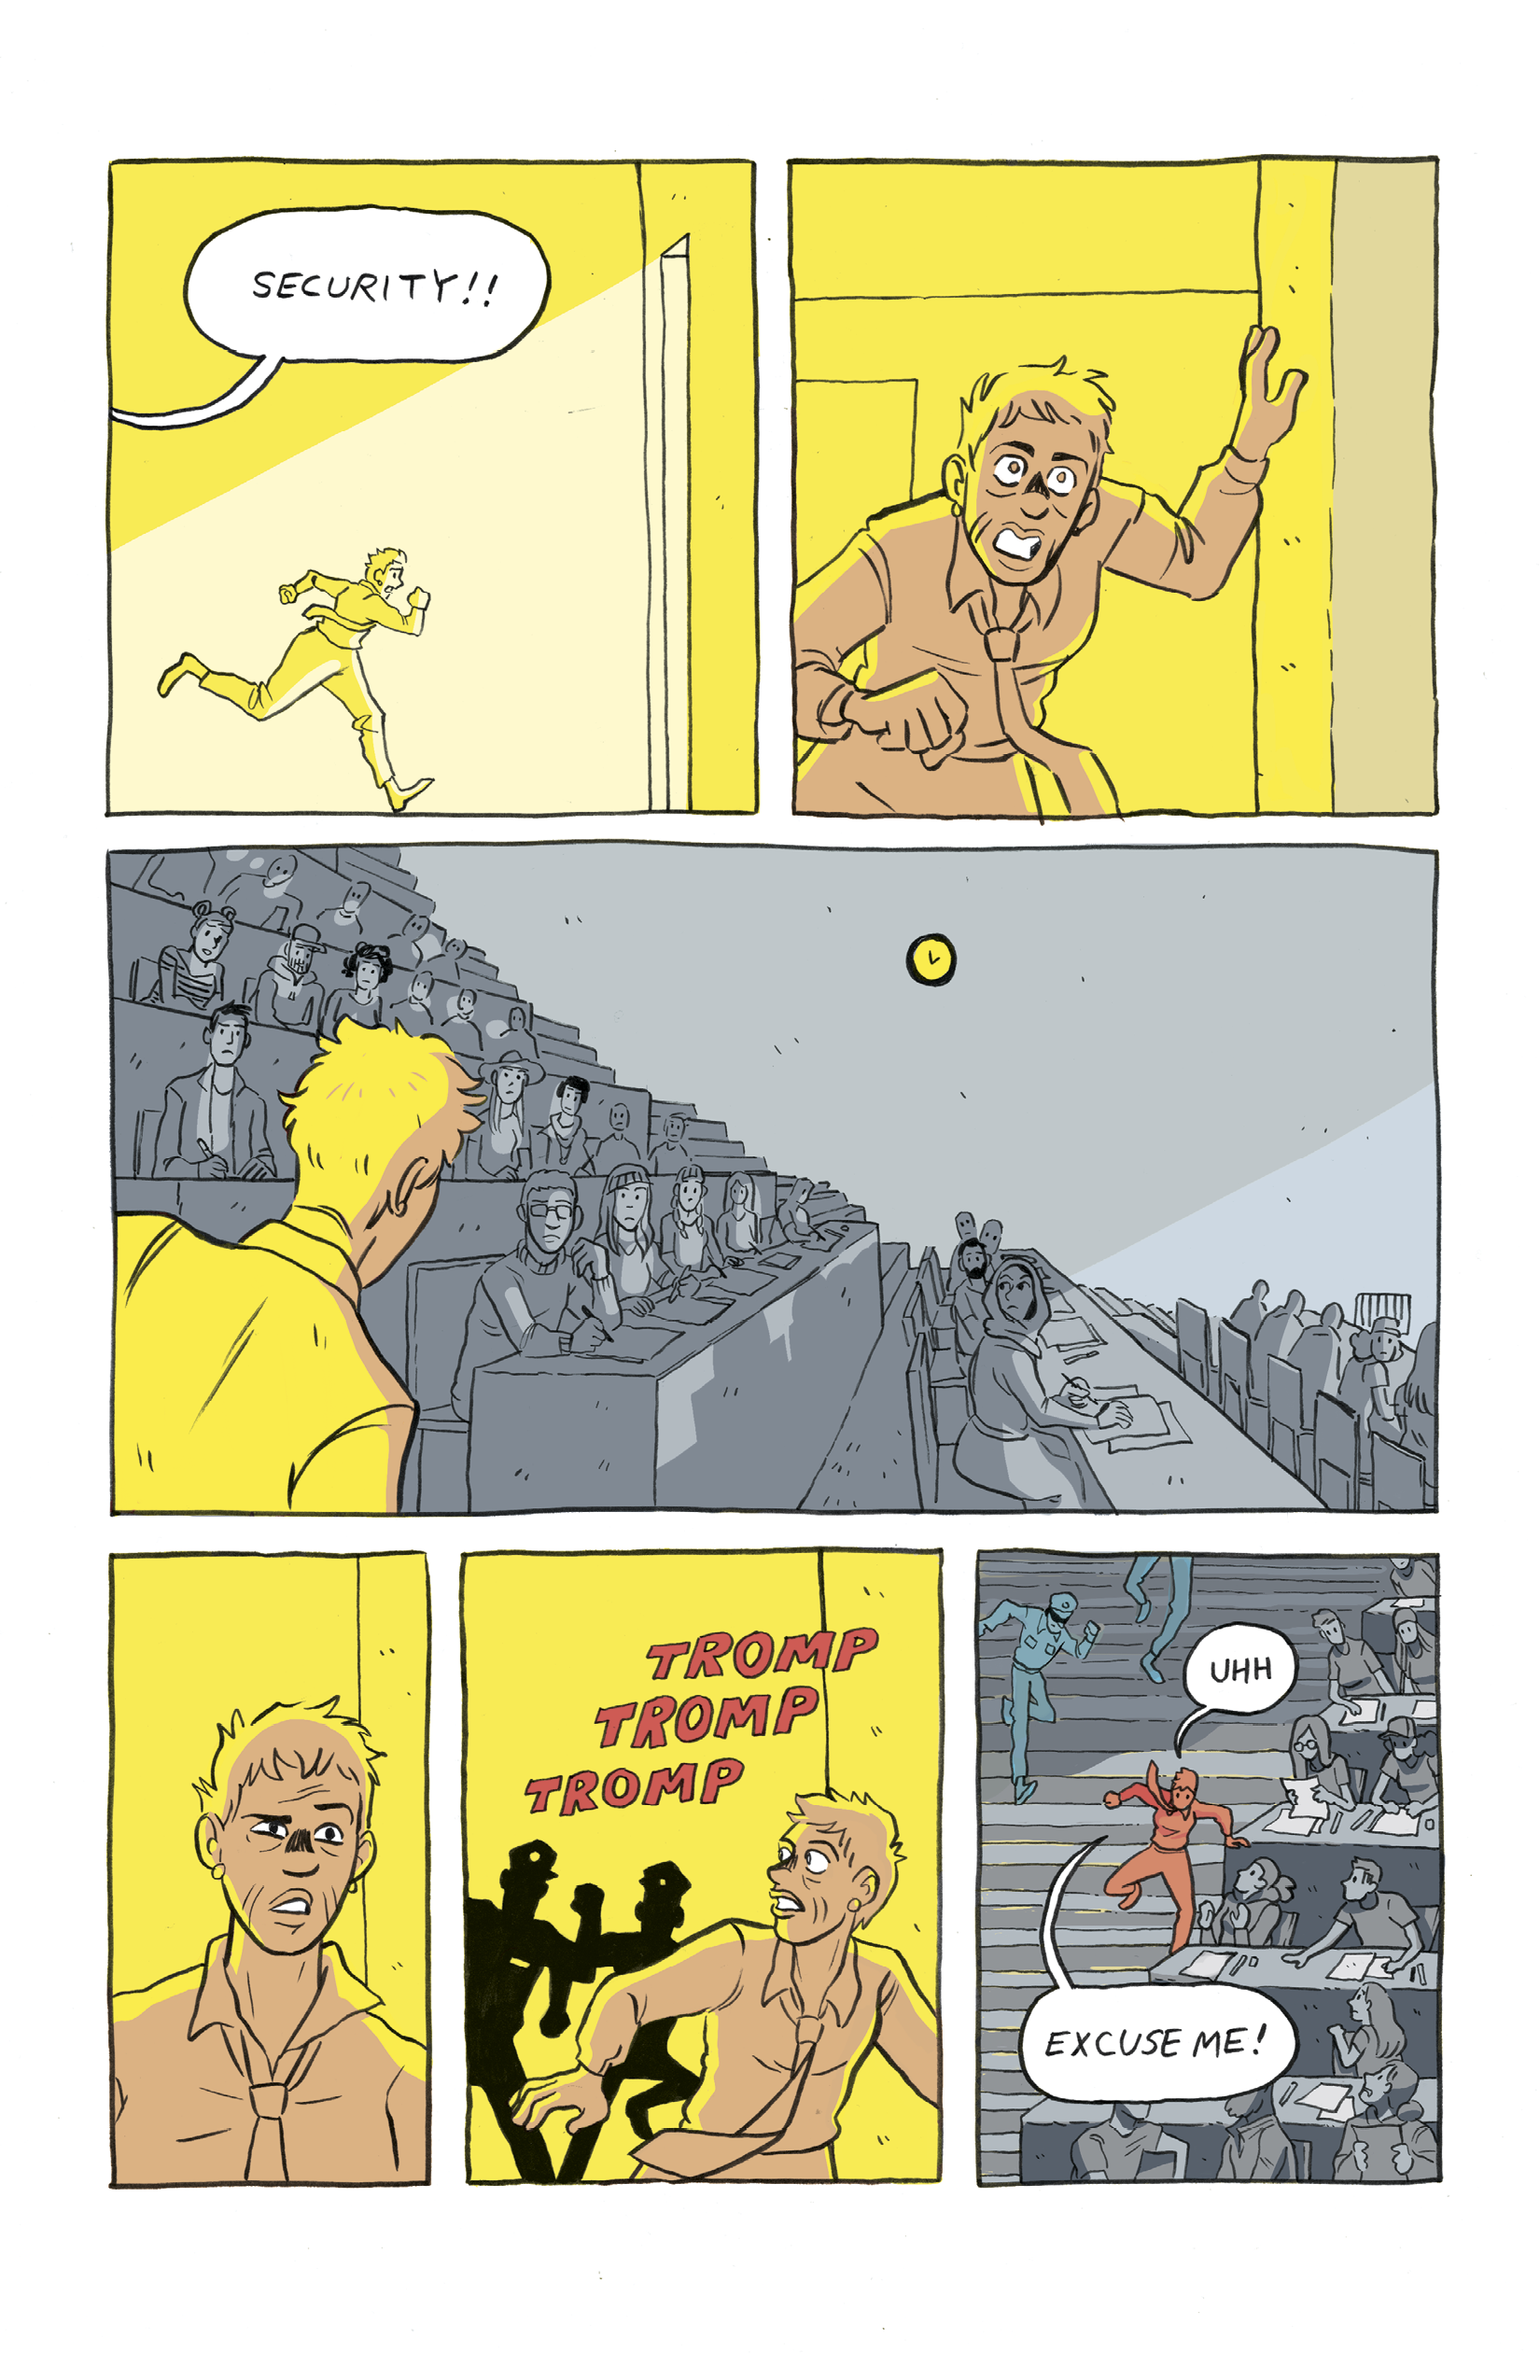 METANOIA_final_001_single_pages8.png